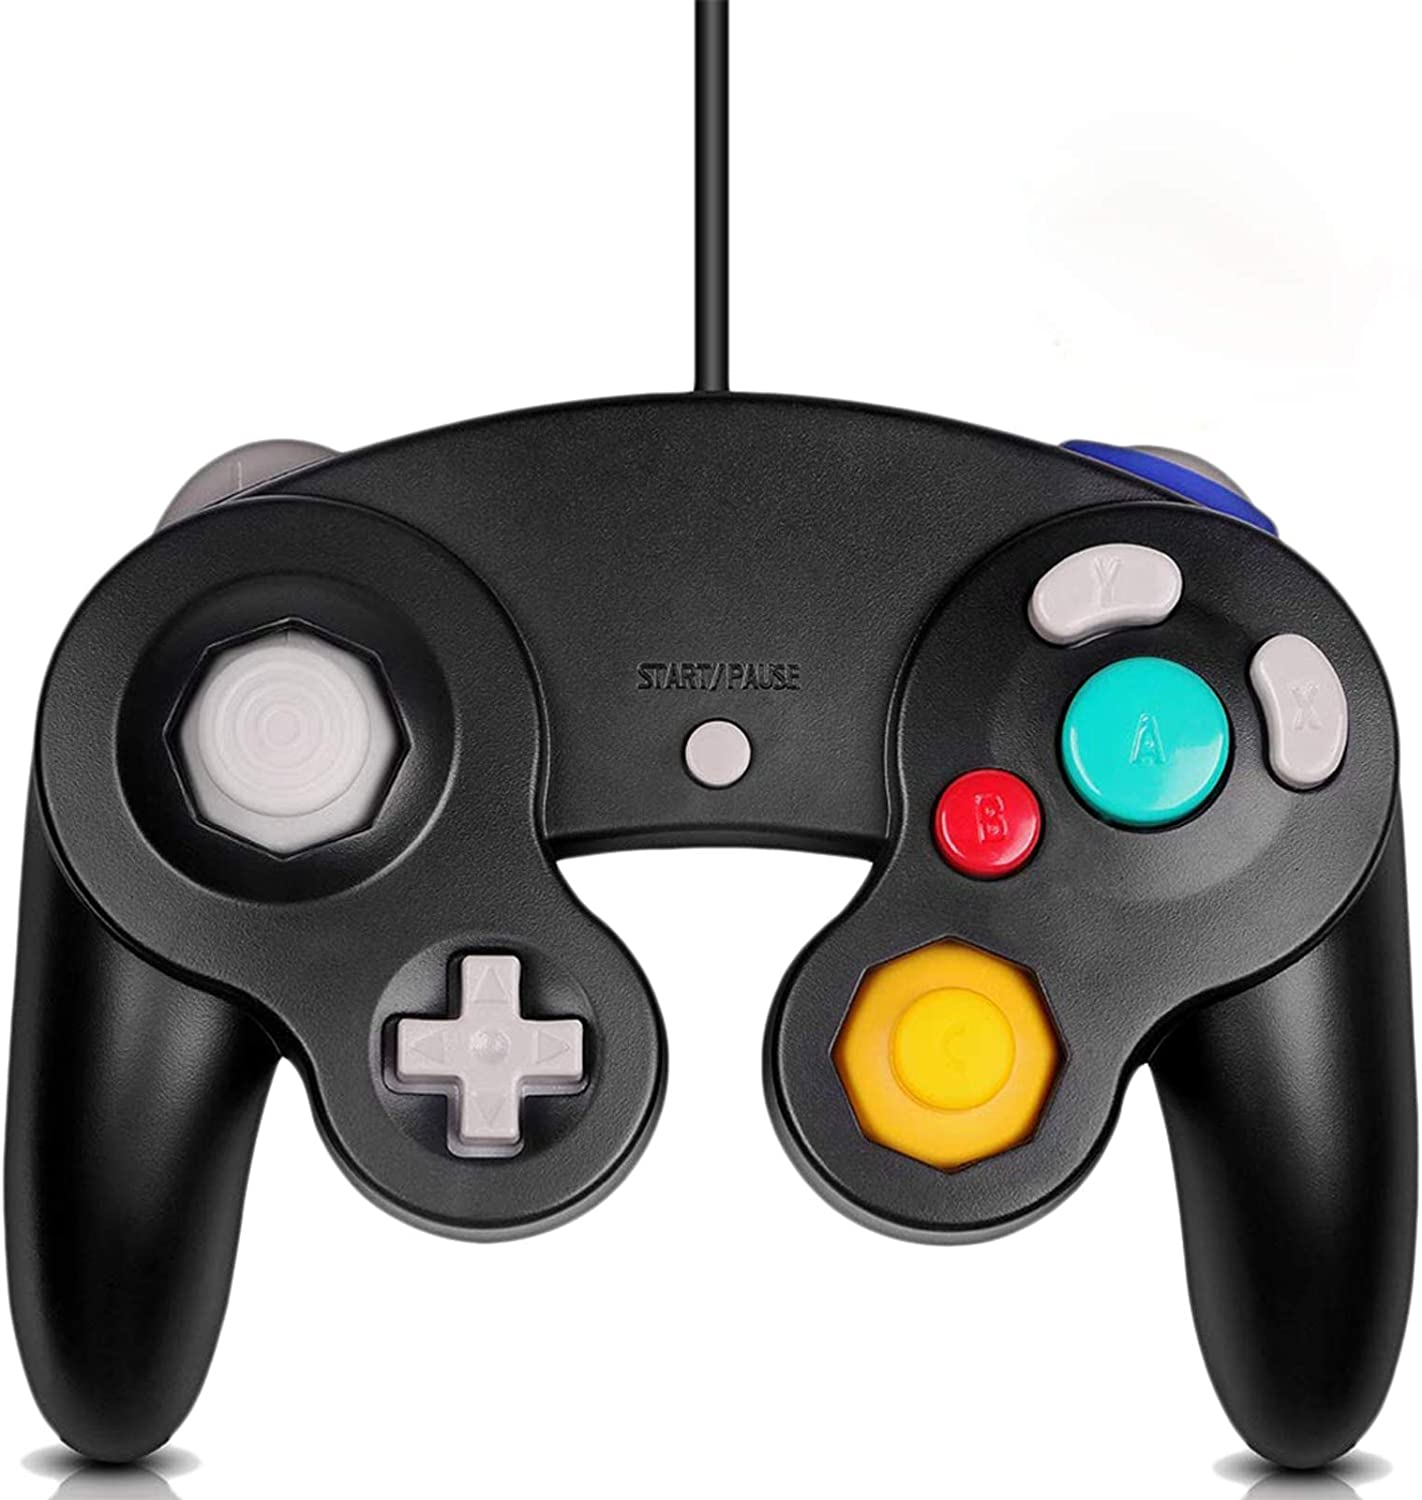 Gamecube Controller, Classic Wired Controller for Wii Nintendo Gamecube (Black)